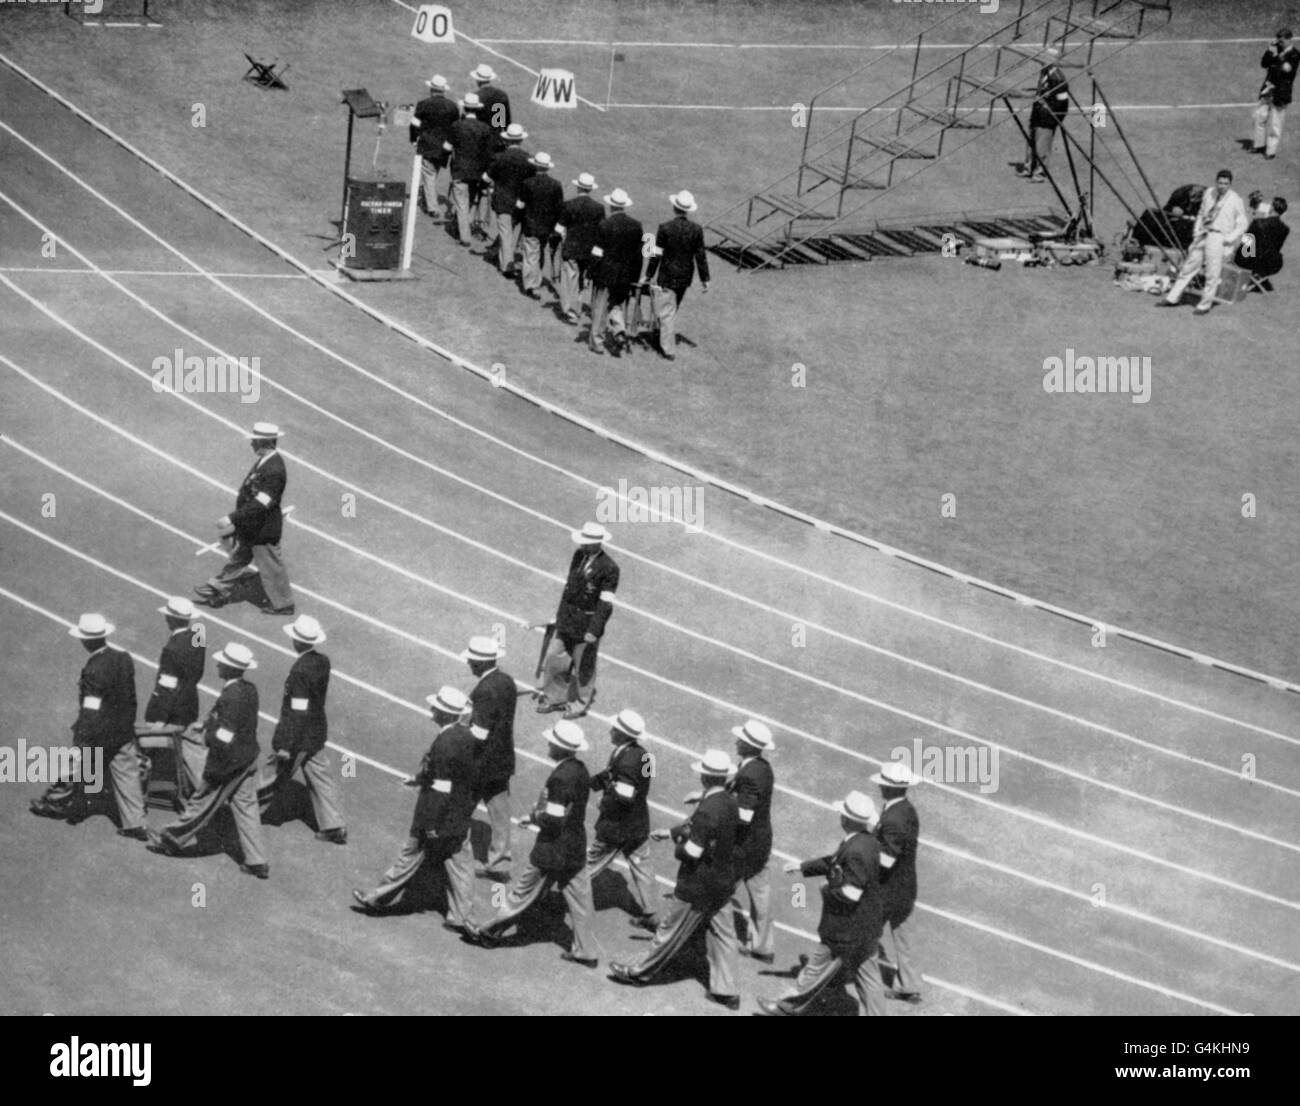 Olympic Games - Melbourne 1956 - Stock Image